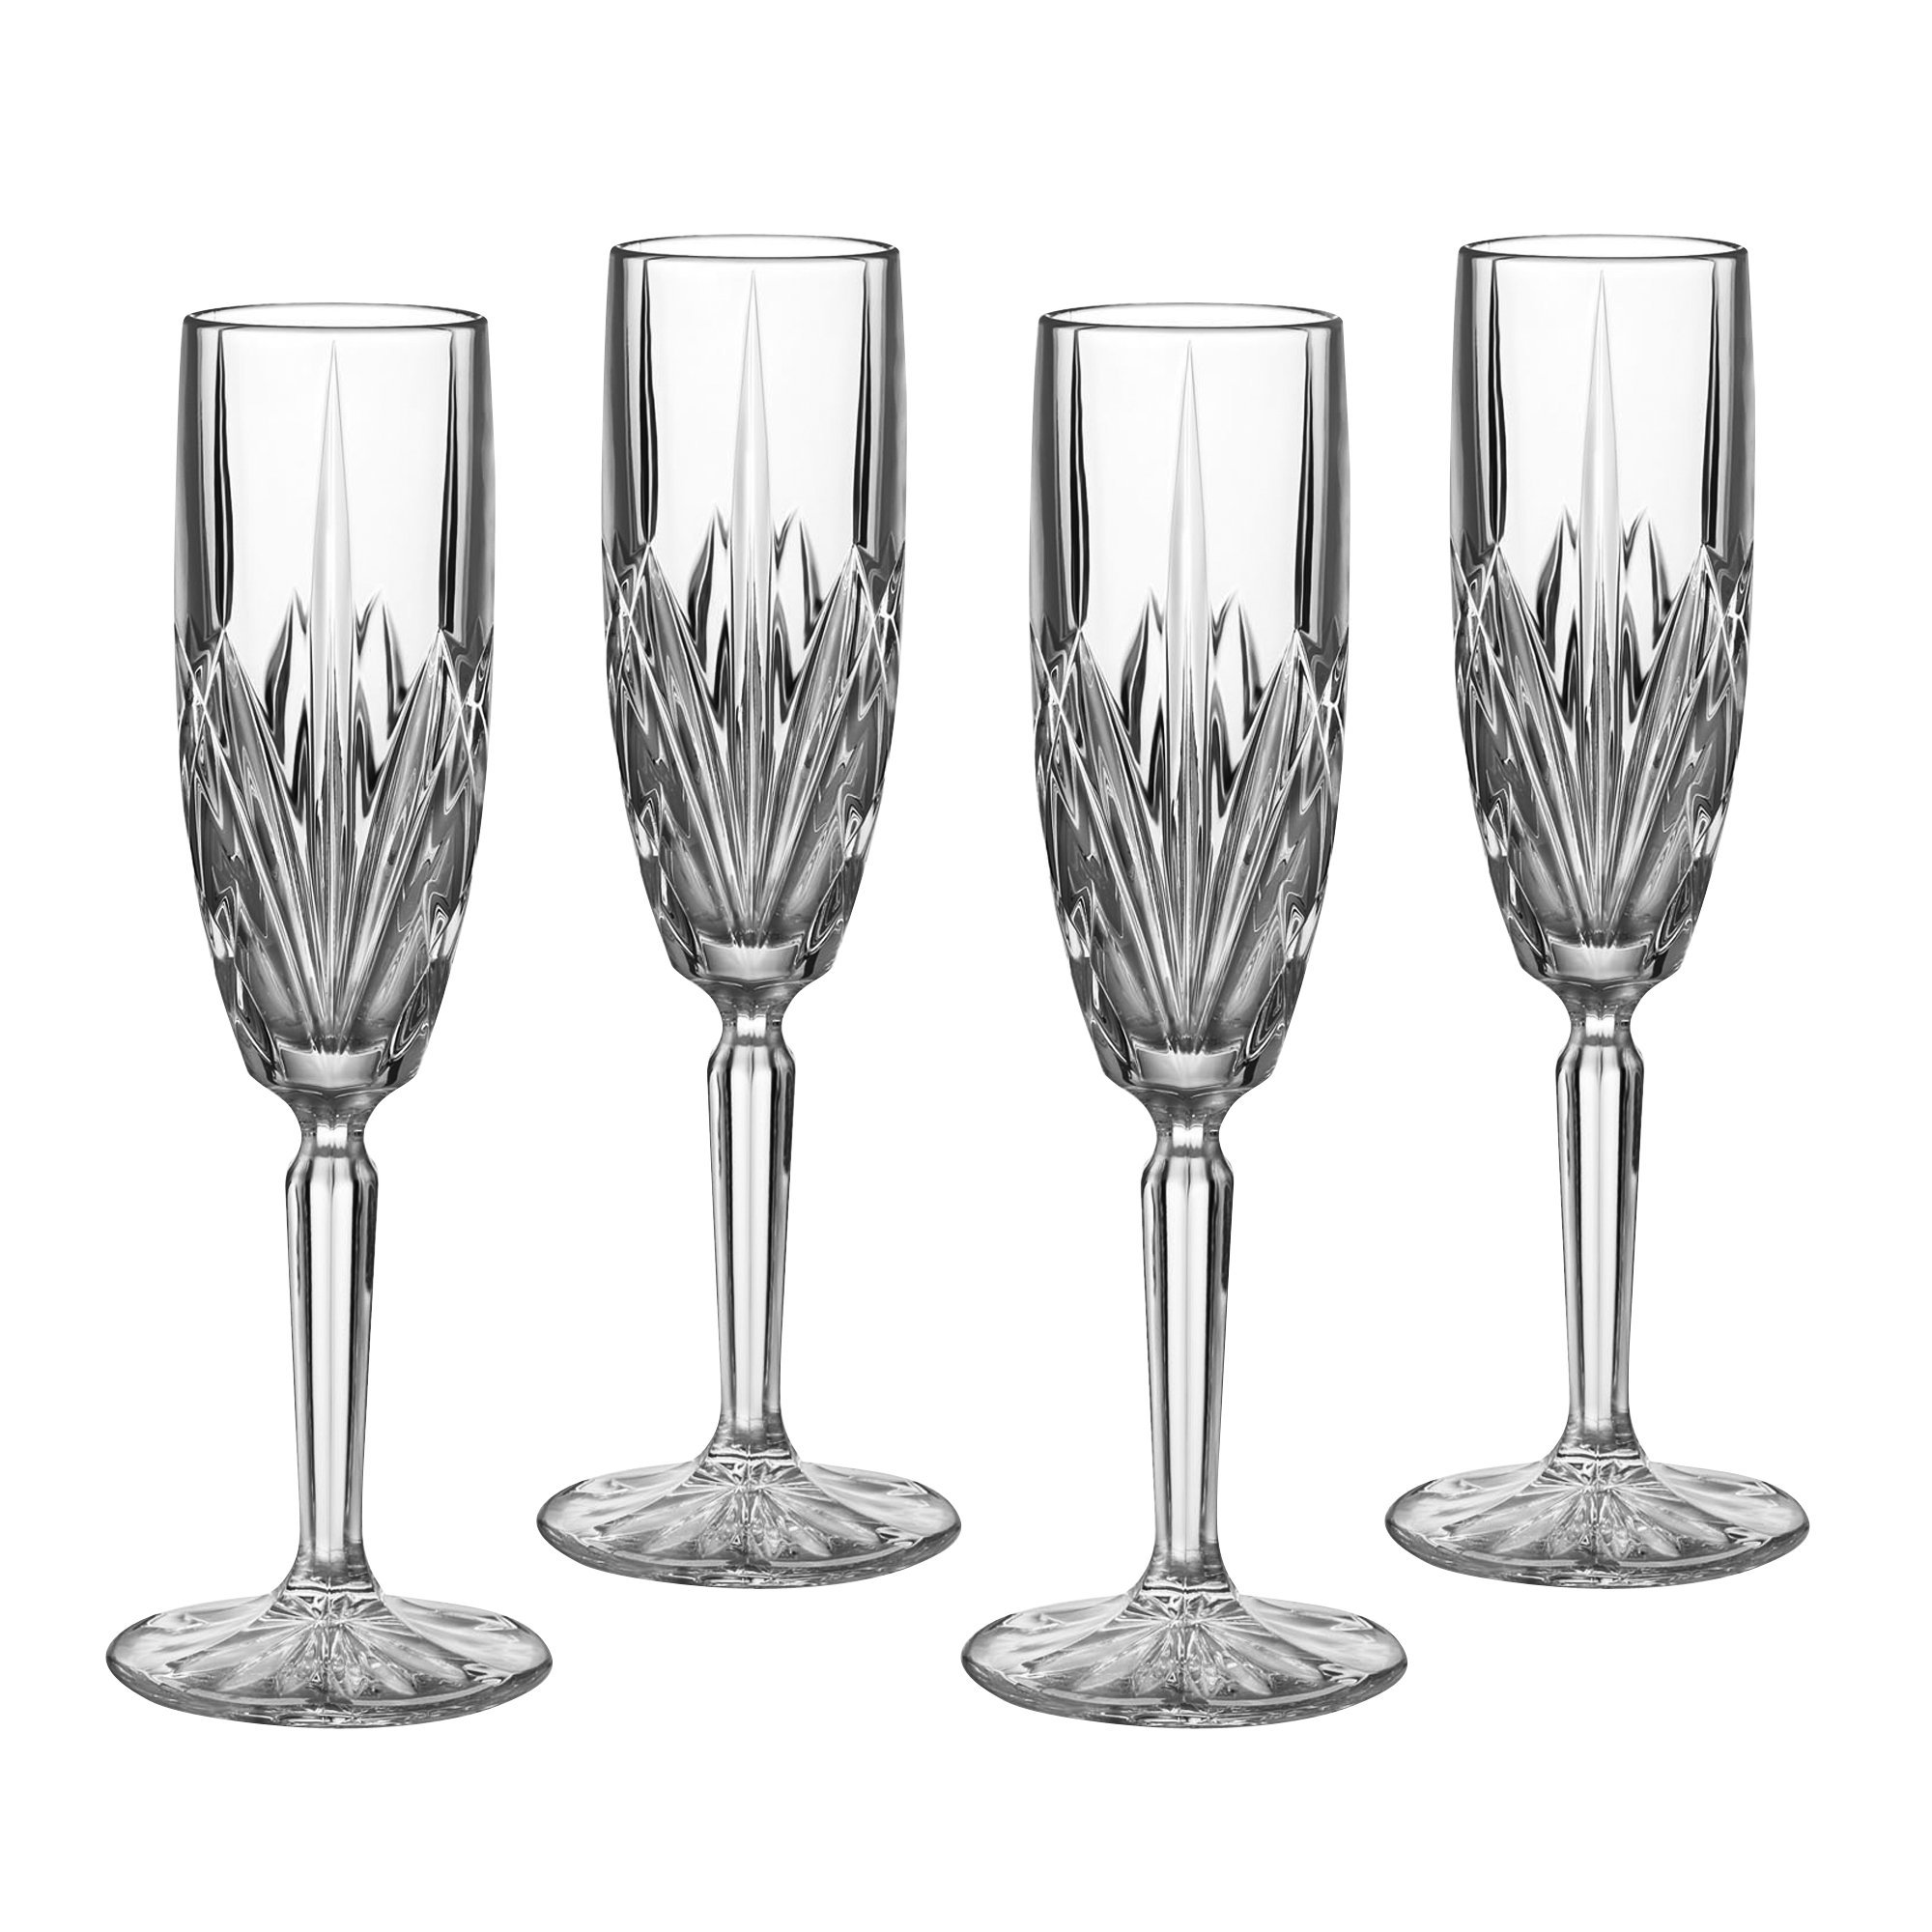 Marquis by Waterford Brookside 6-Ounce Champagne Flutes, Set of 4